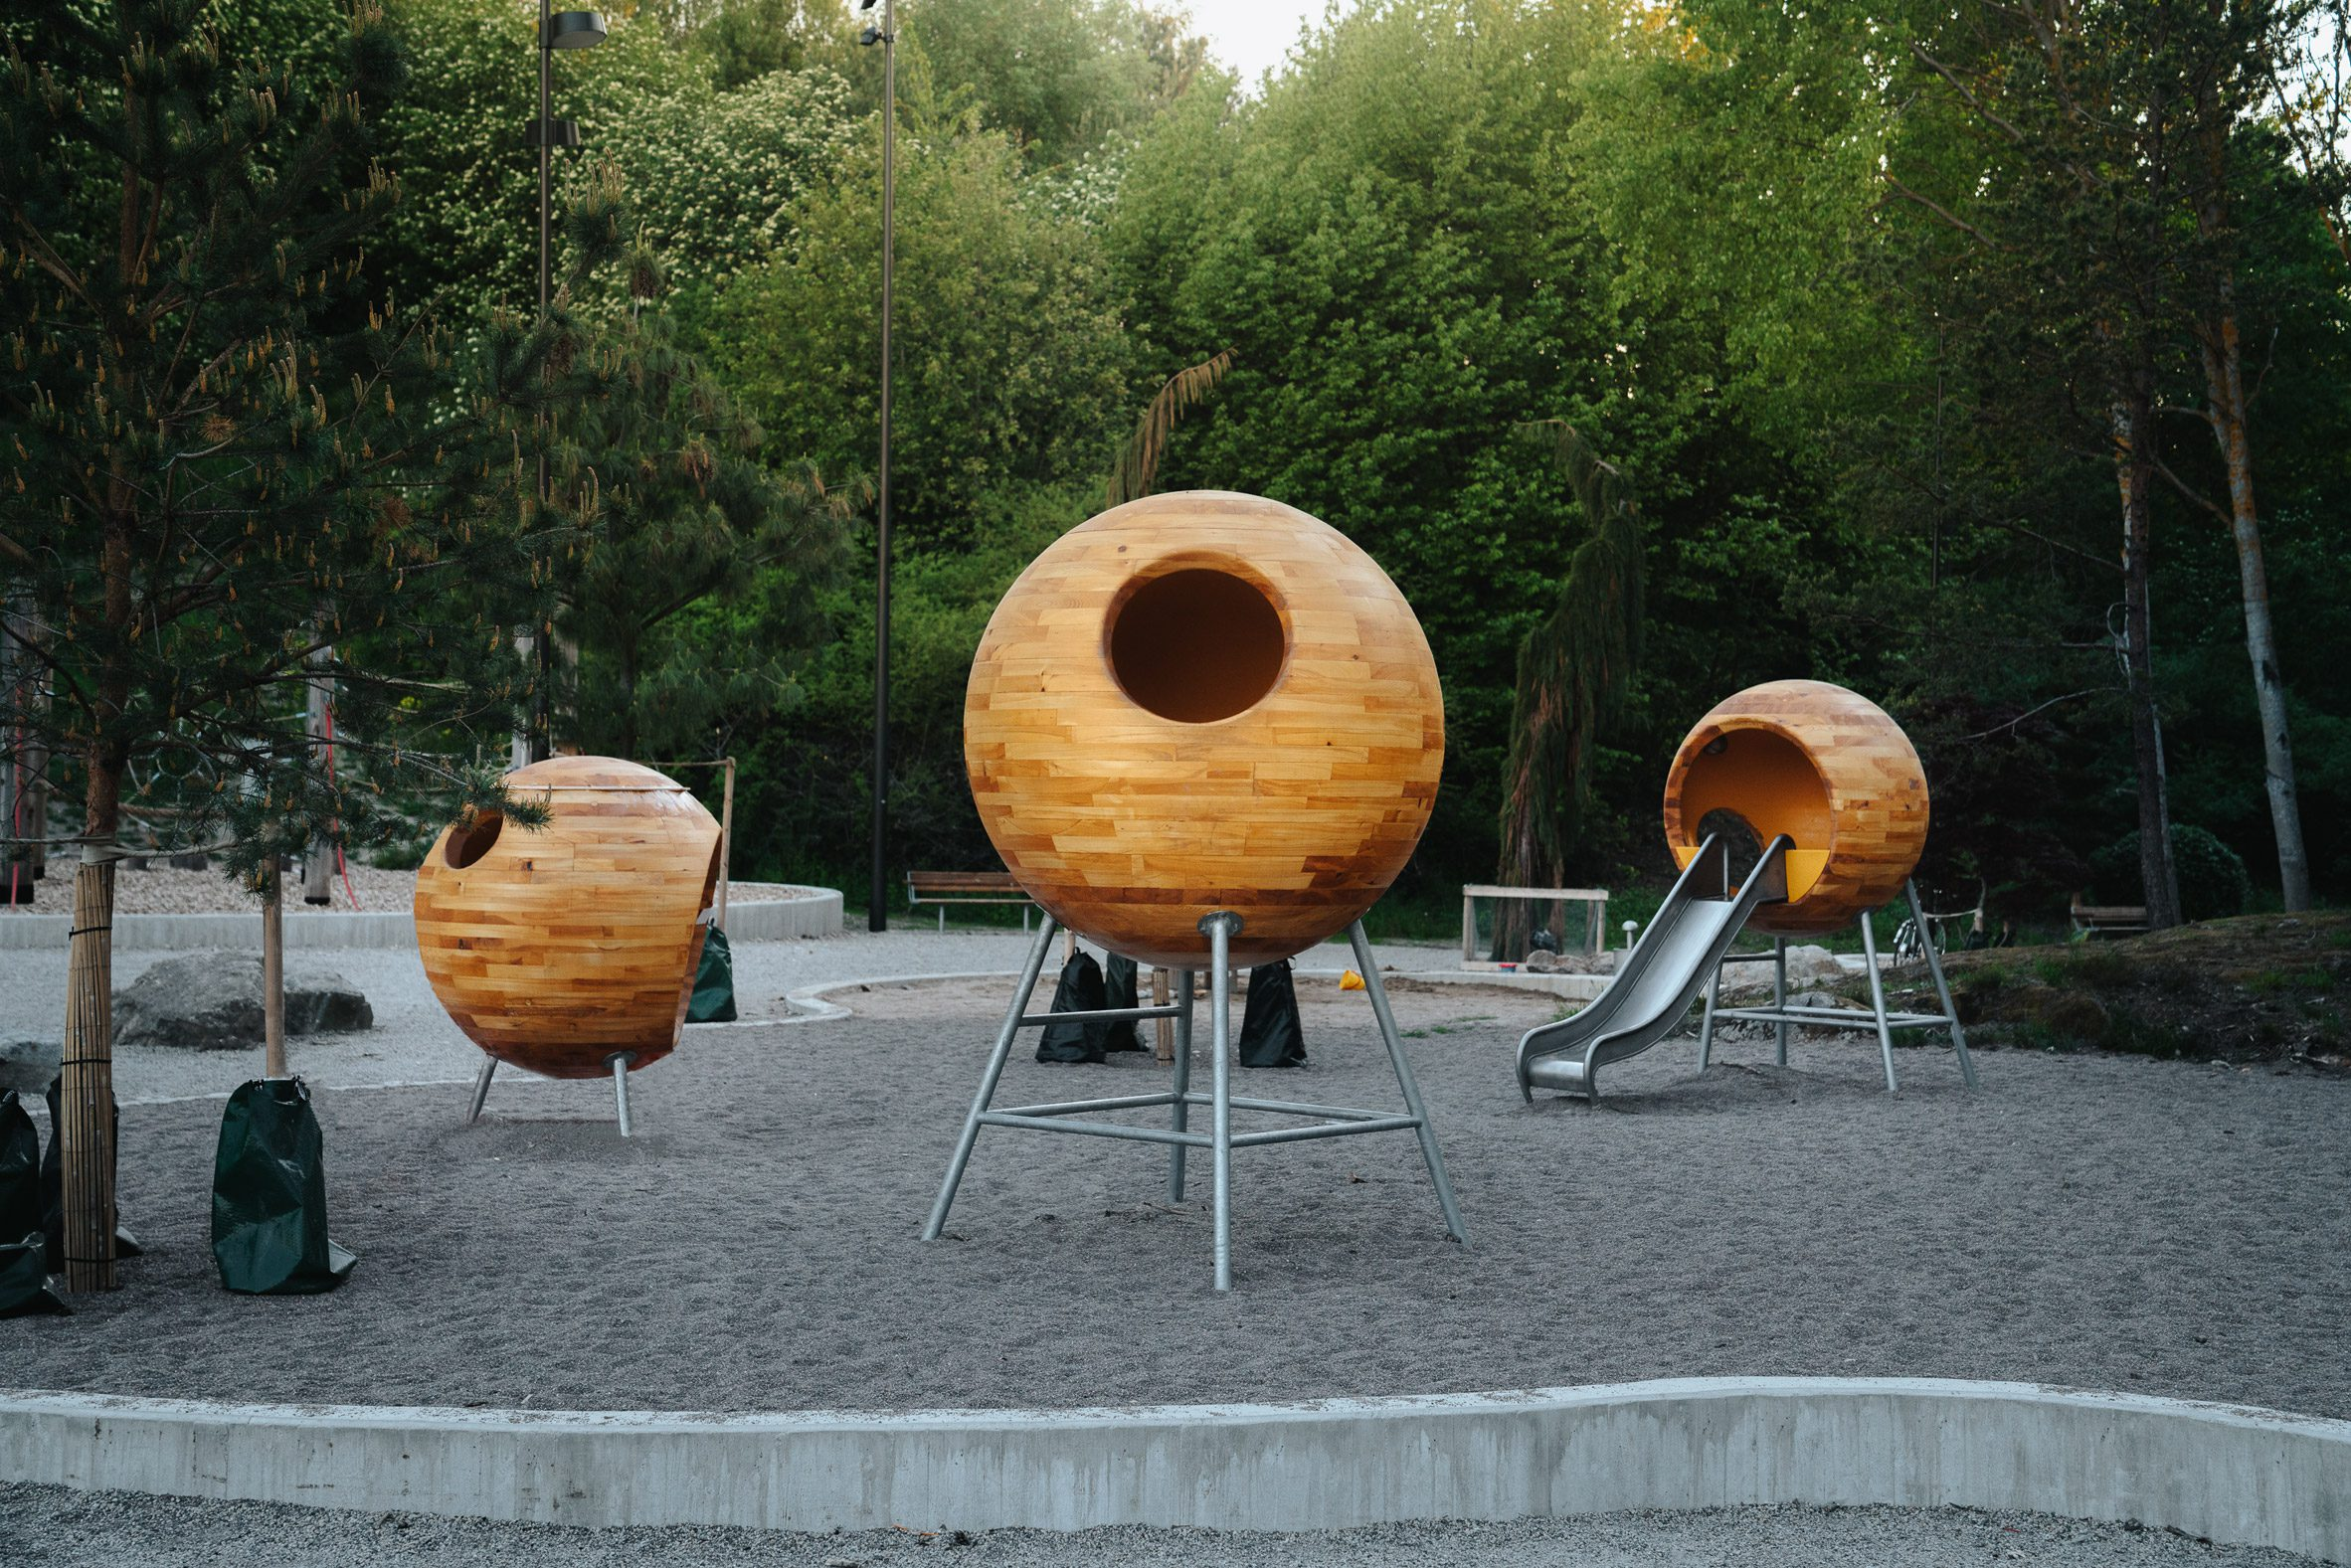 Three small spheres inside a playground